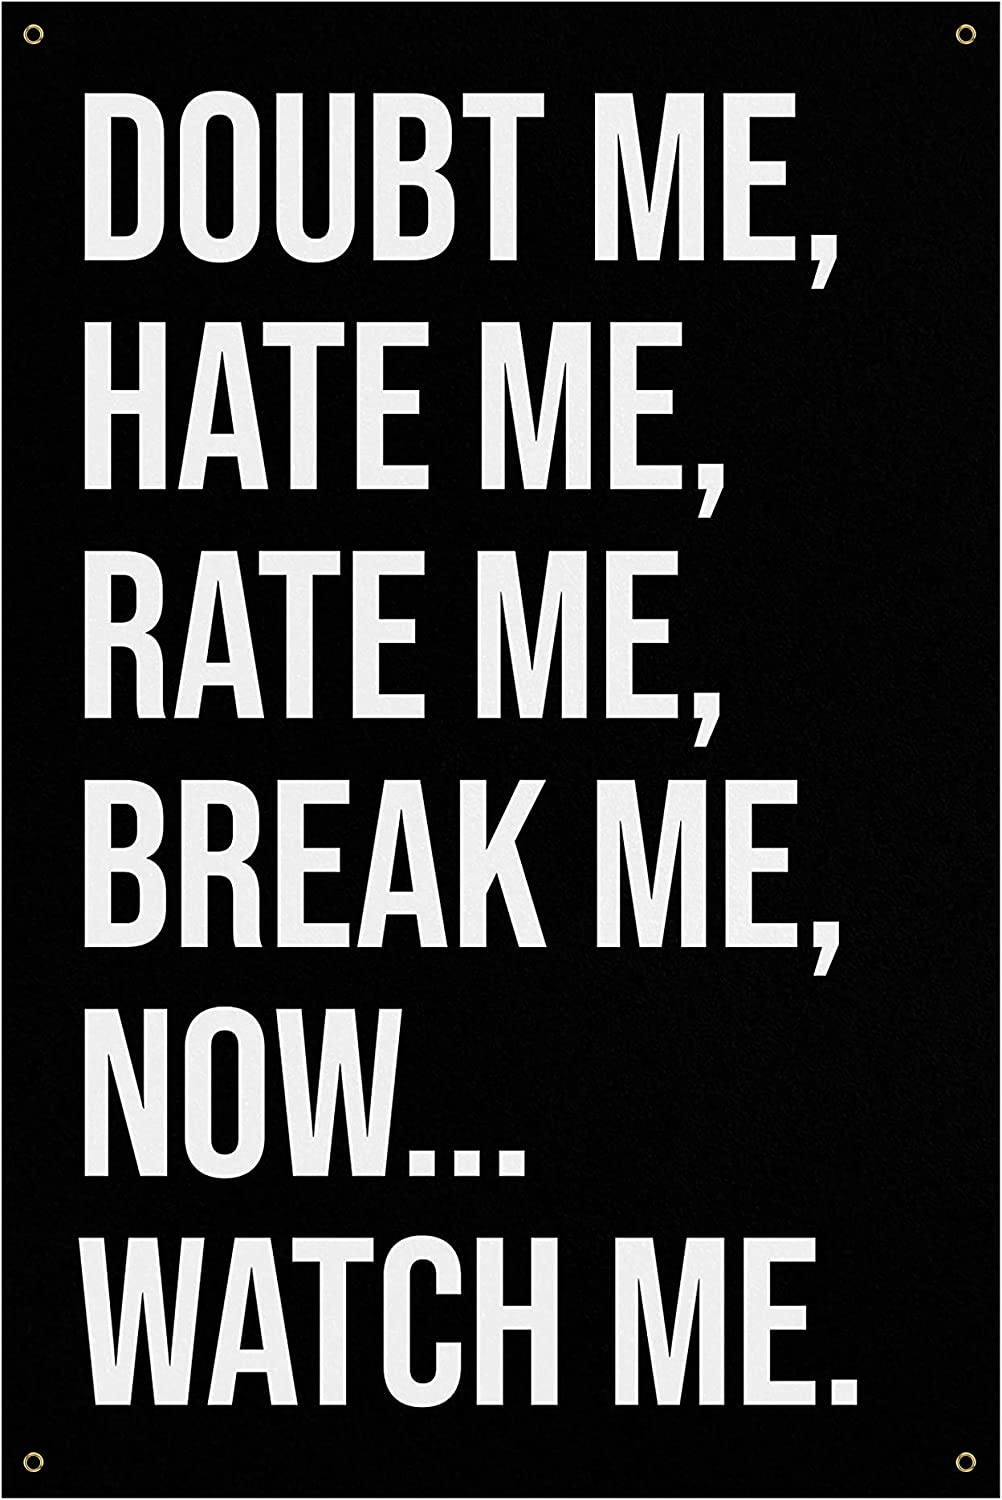 Doubt Me Hate Banner - Sales of SALE items from new works Home Quotes Gym At the price Art Wall Large Decor